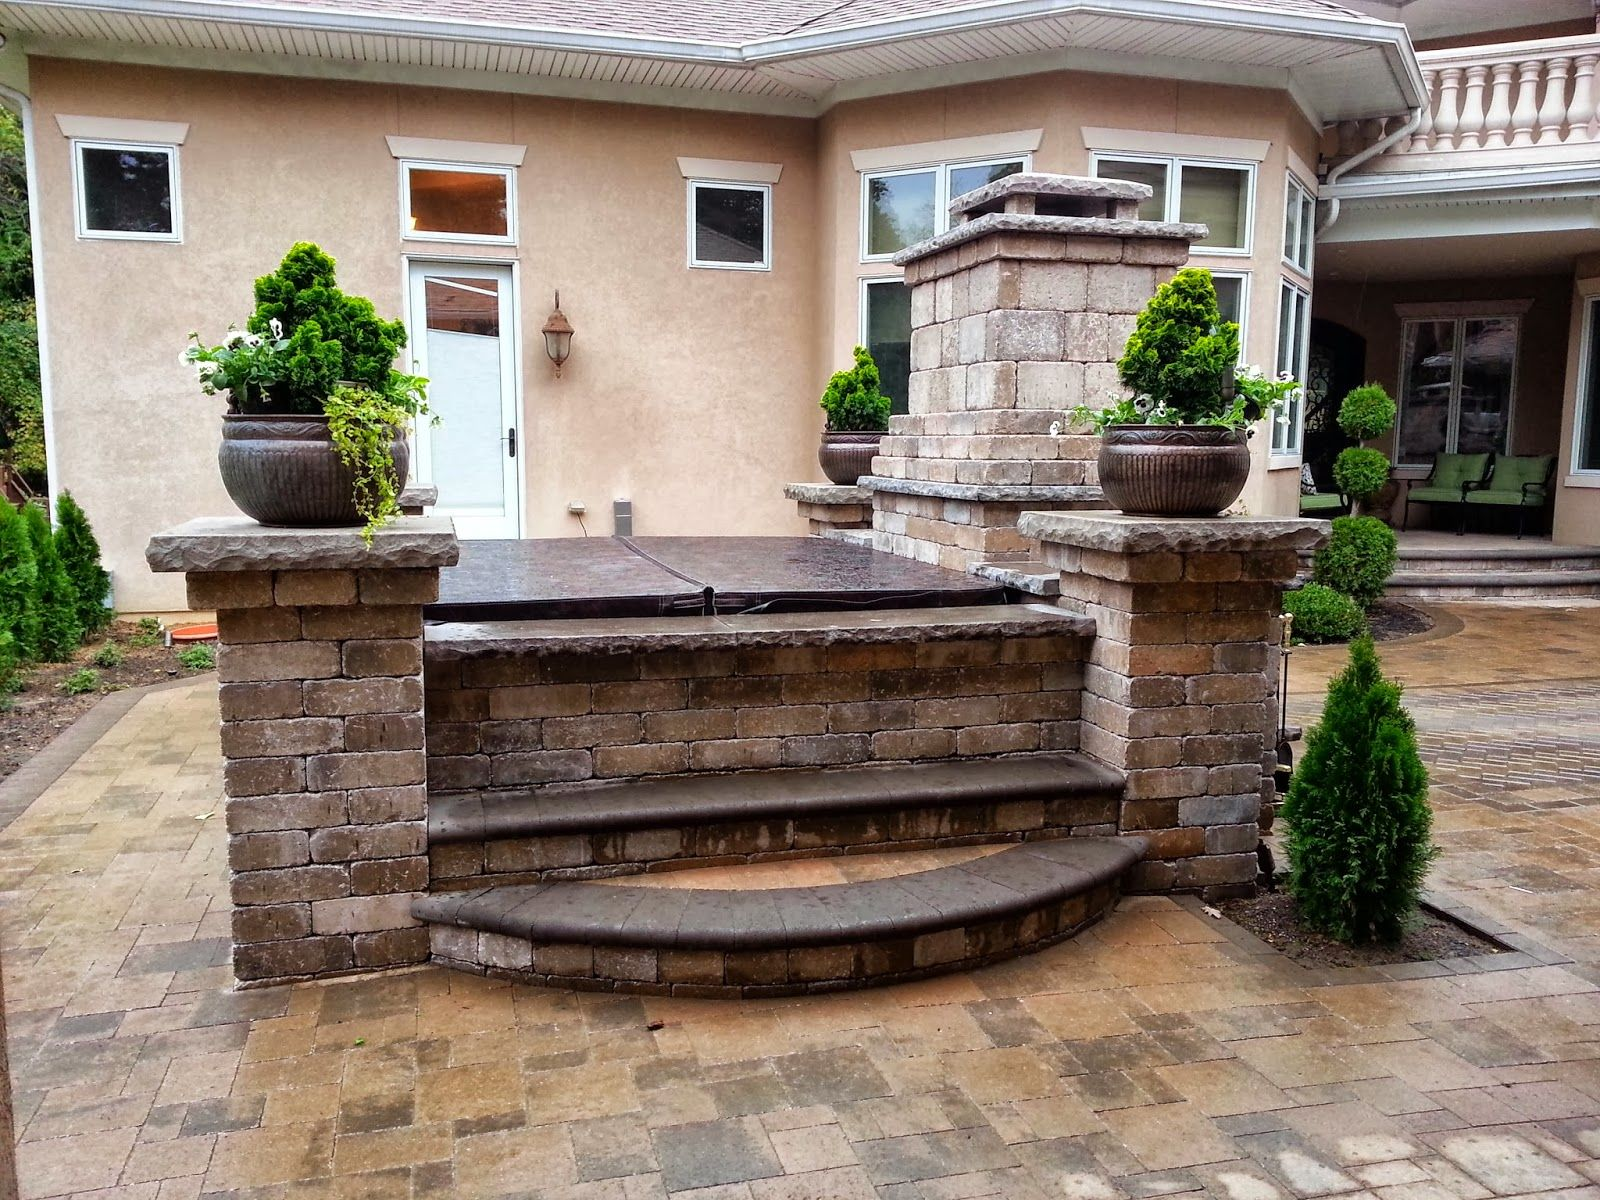 Patio Paver Photos With Hot Tubs Fireplace Hot Tub